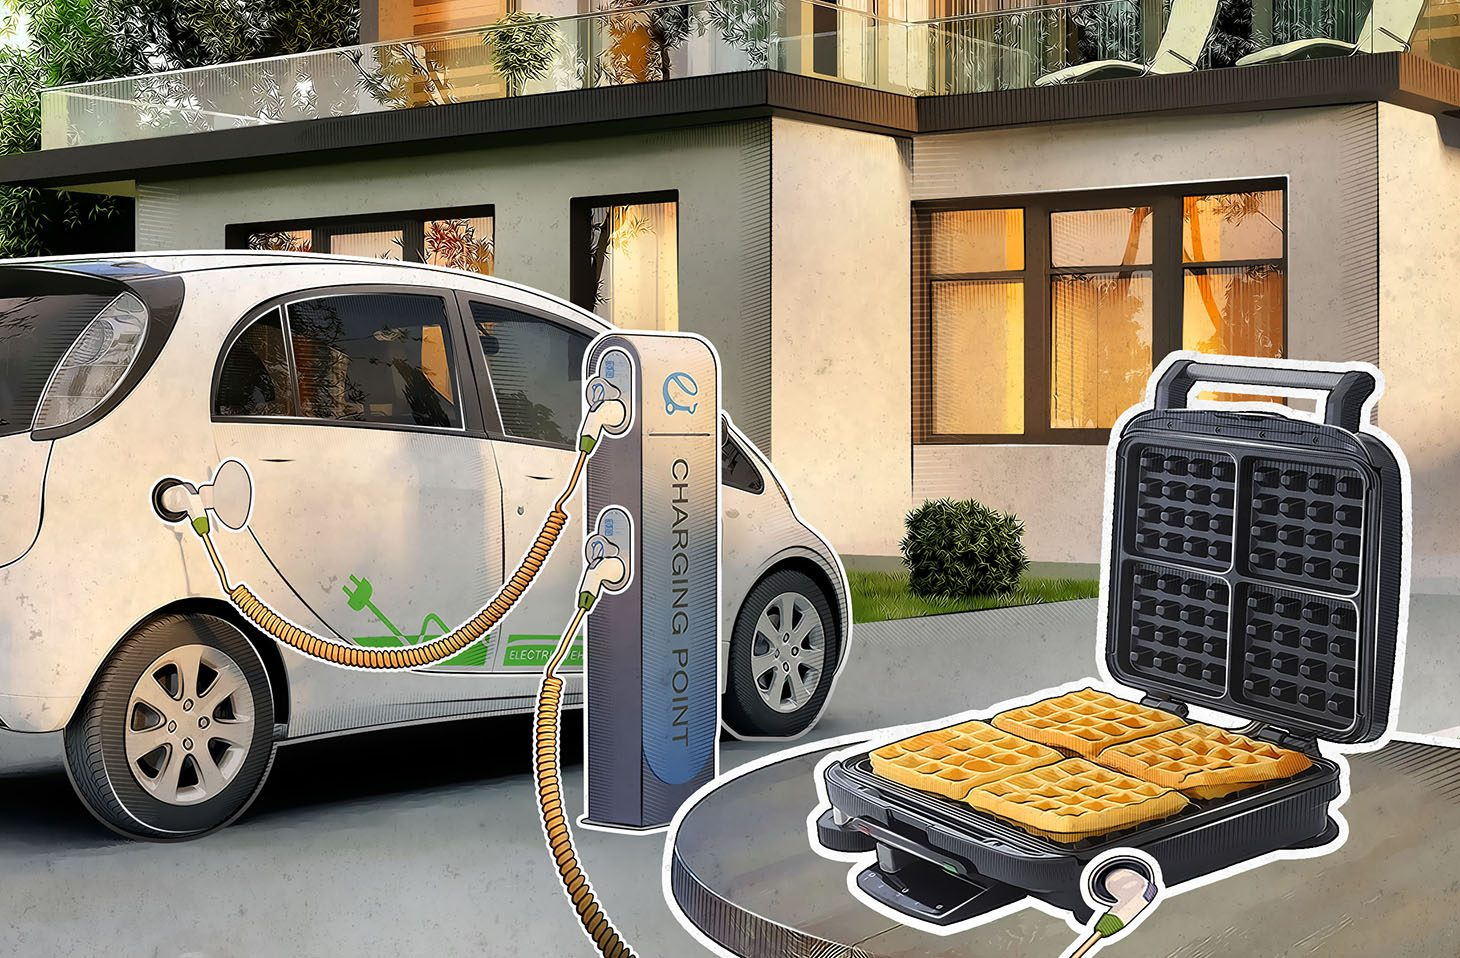 Vulnerabilities of electric car charging | Kaspersky official blog